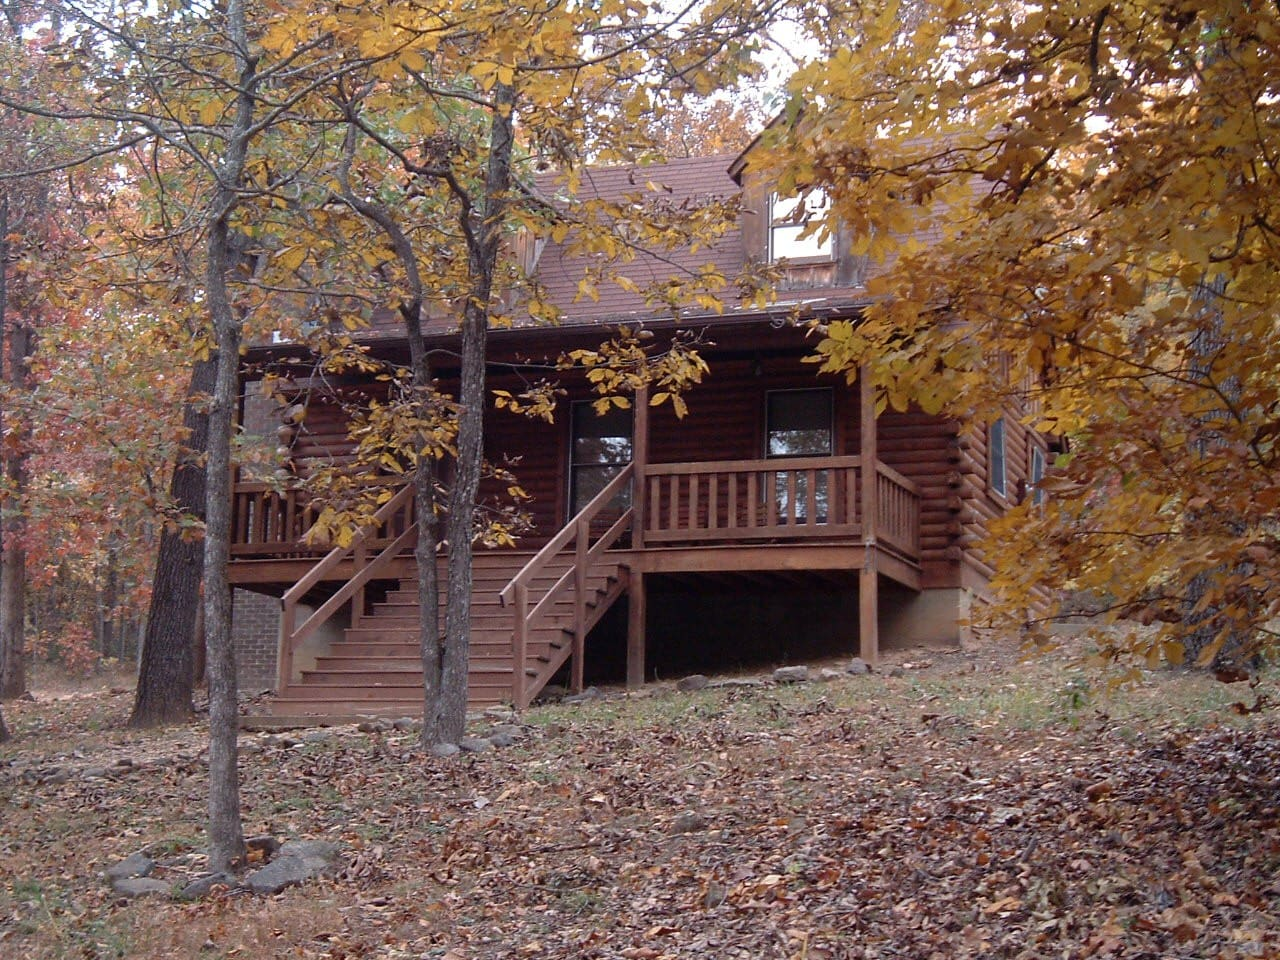 Front view of one of the cabins in the fall.